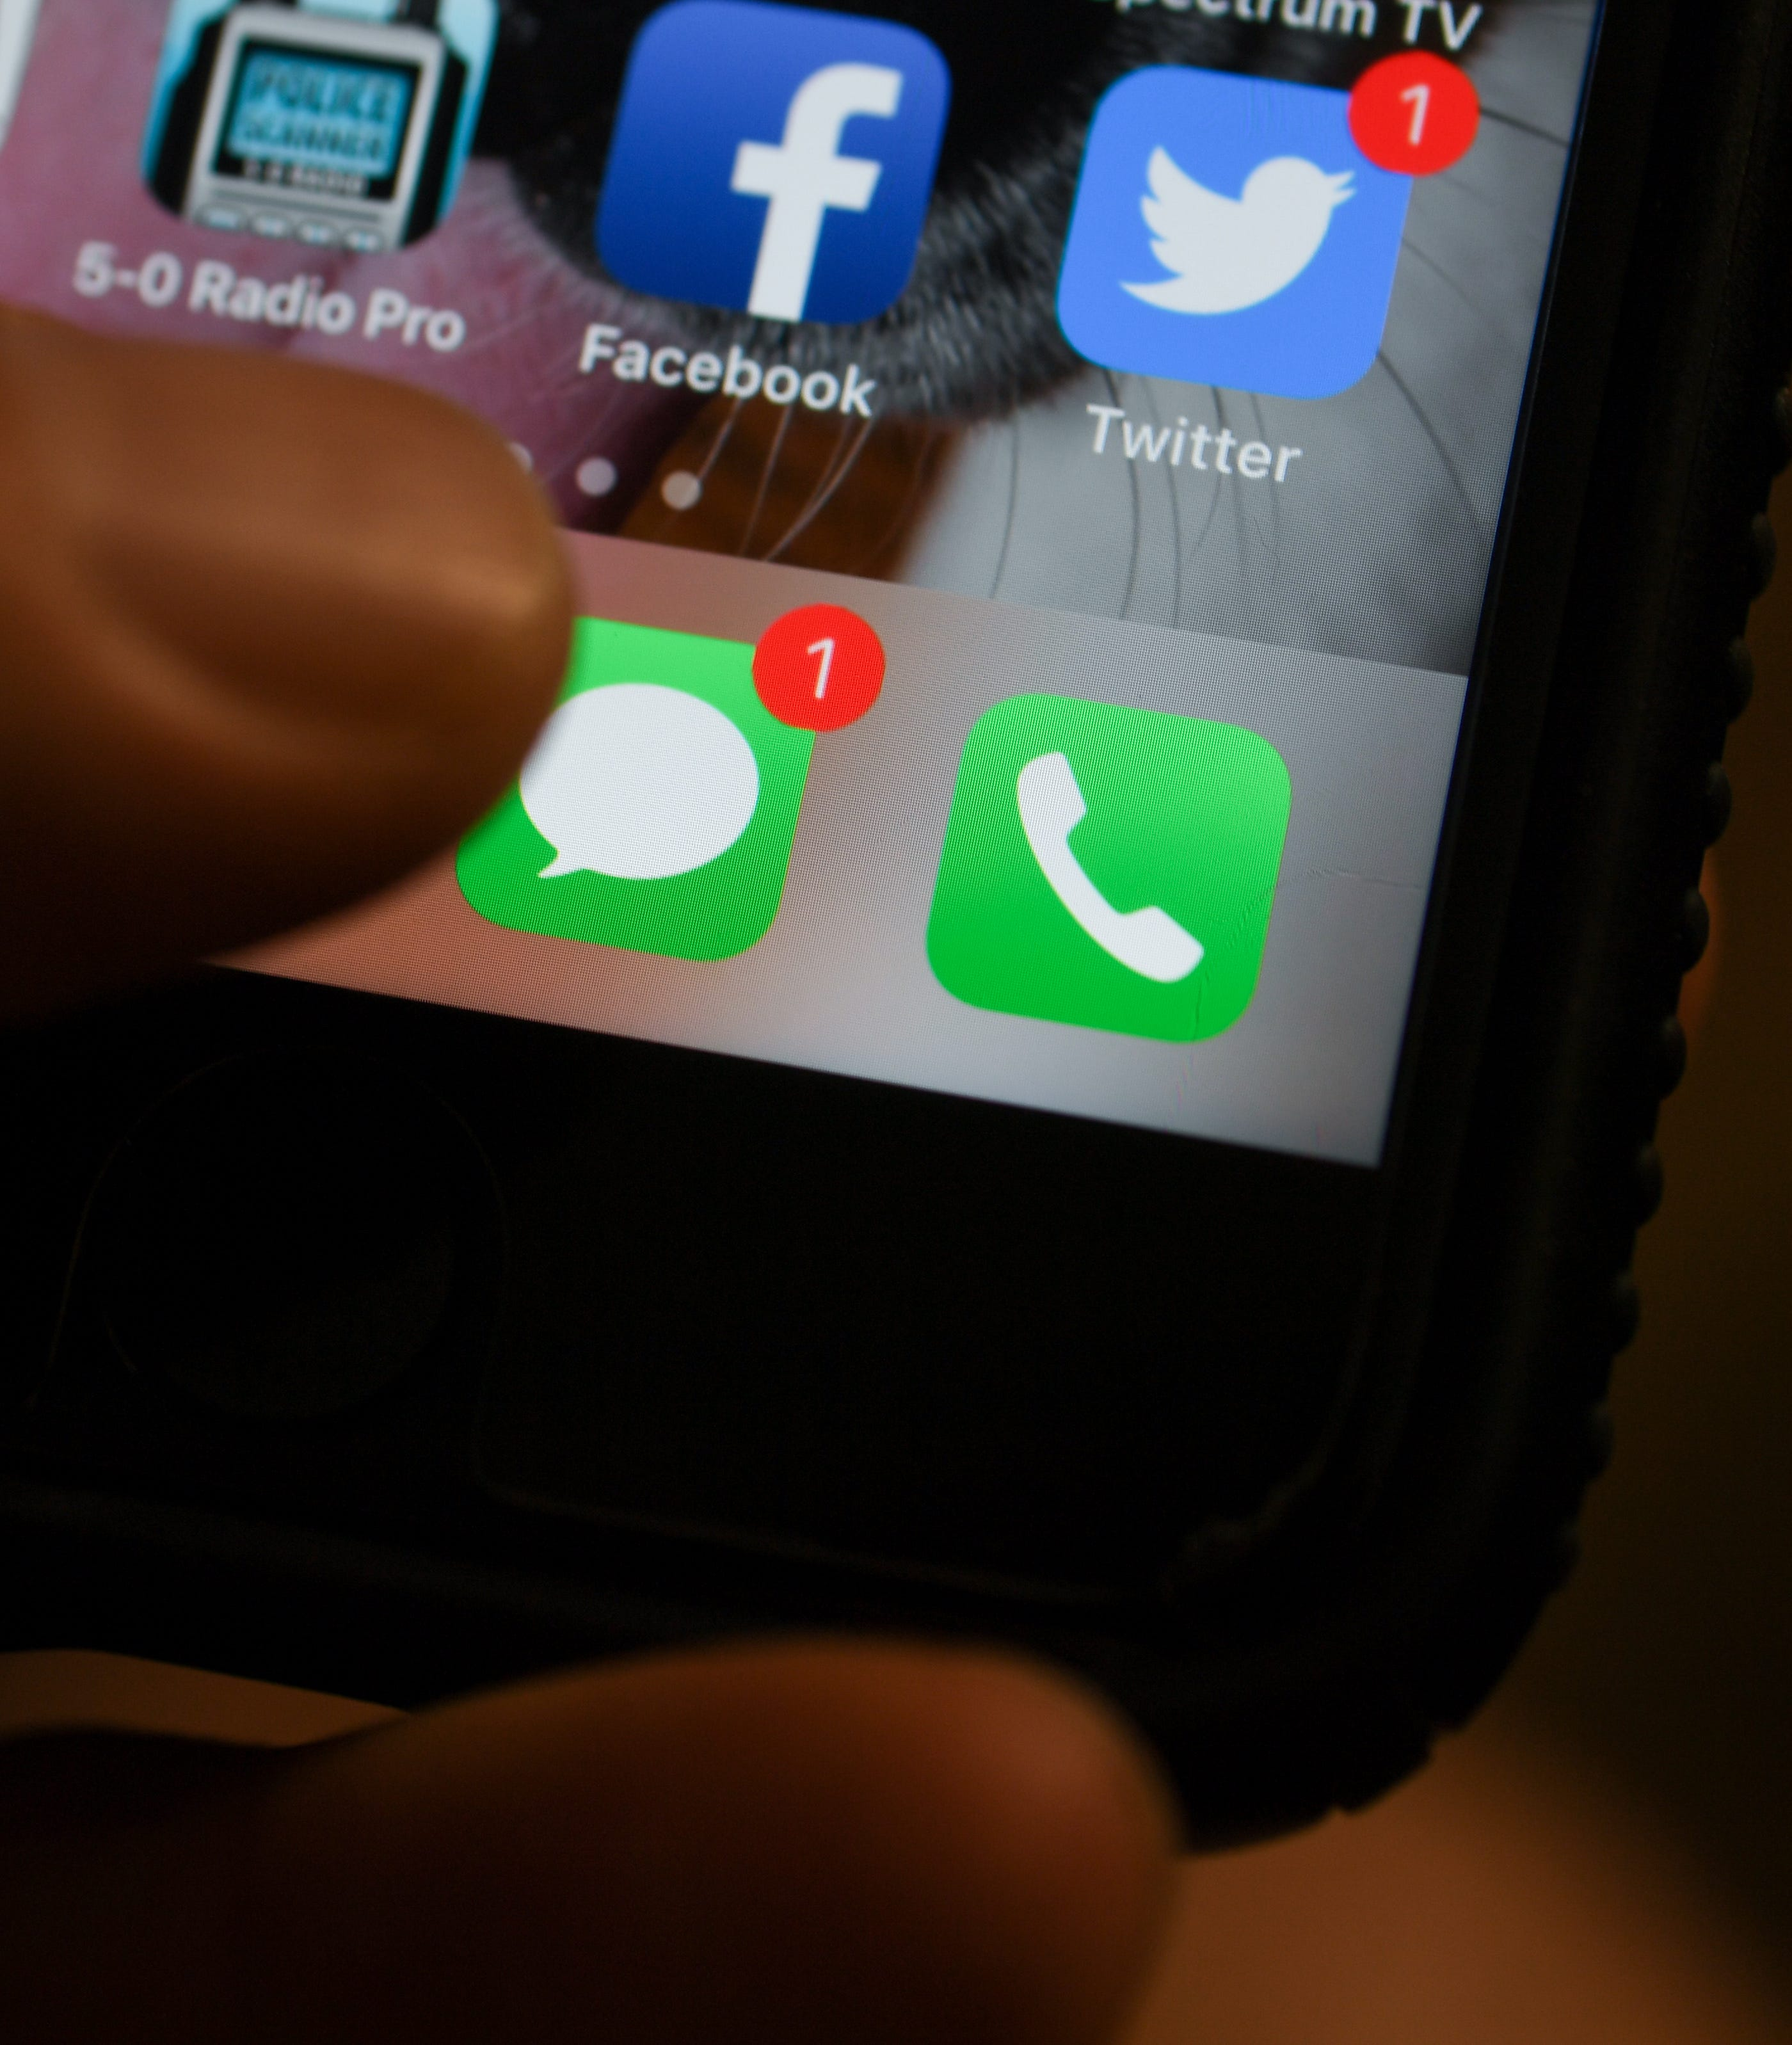 New Mexico's 'warm line' launches texting option | Las Cruces Sun